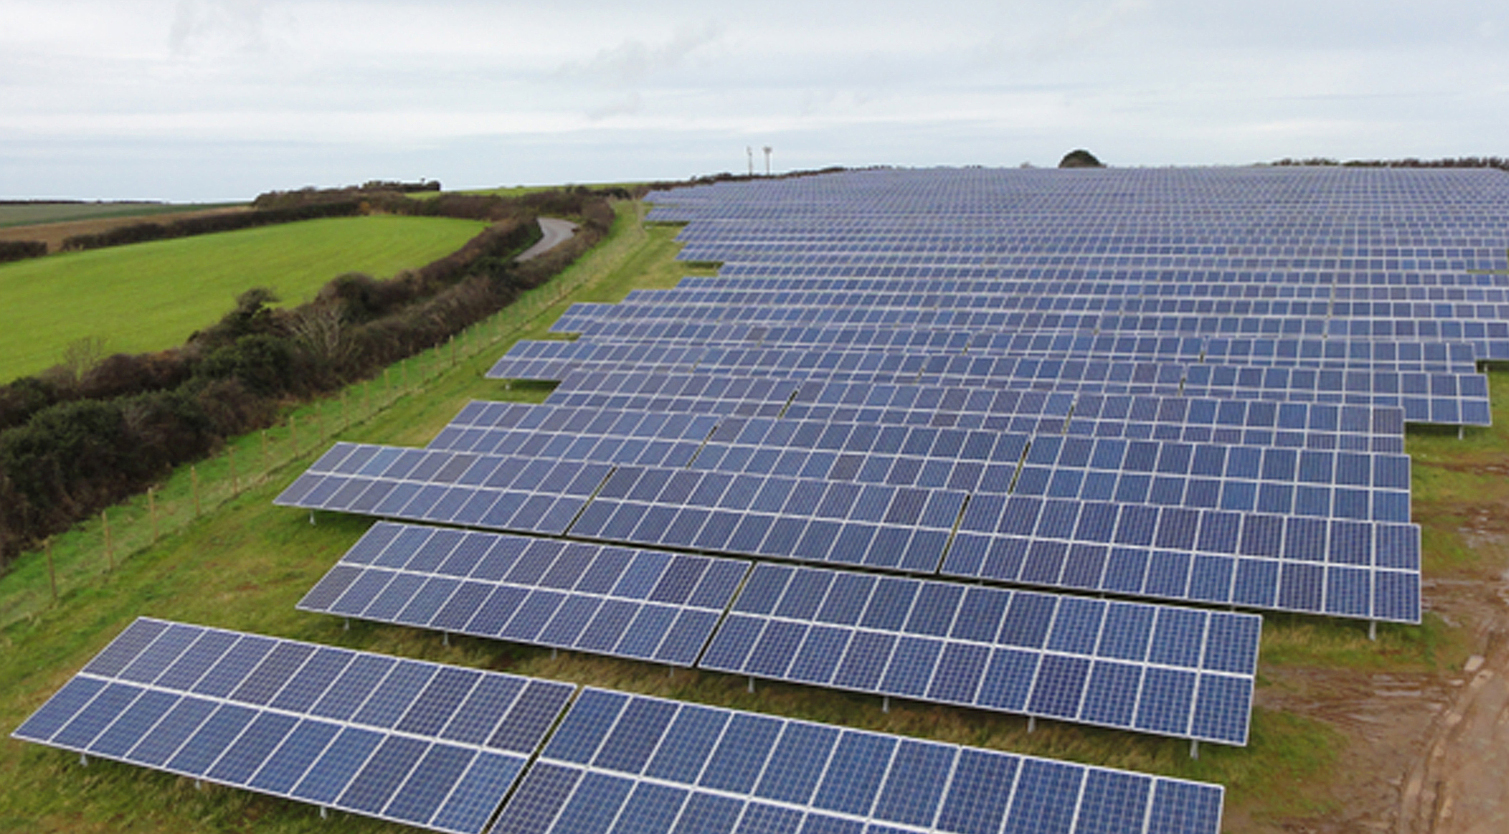 A Martifer solar farm in the UK. Source: Martifer Solar.